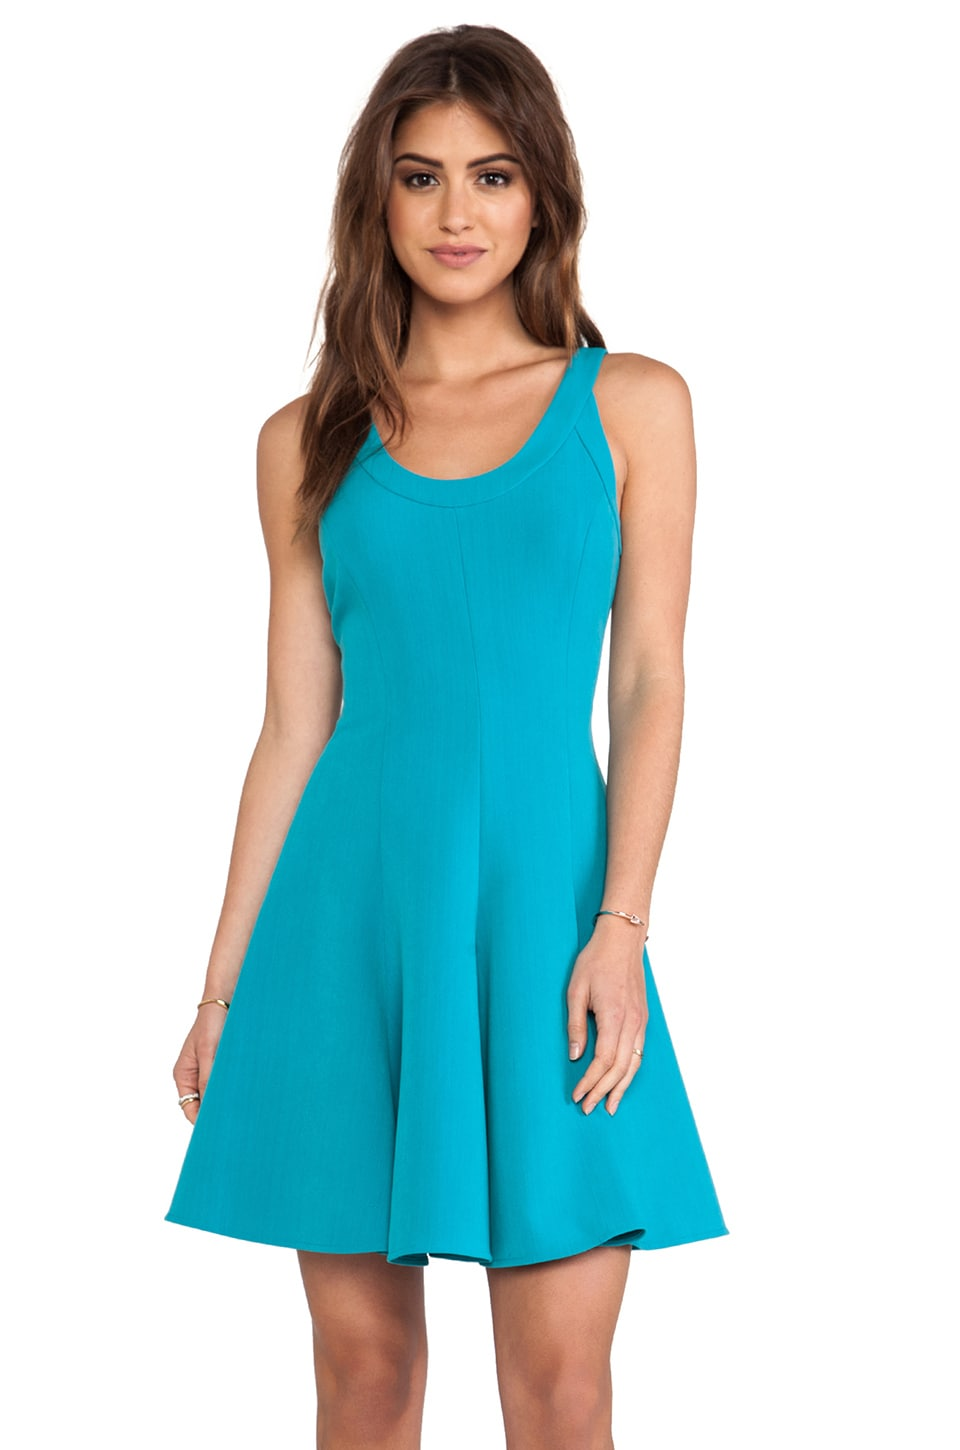 Halston Heritage Fit and Flare Dress in Caribbean